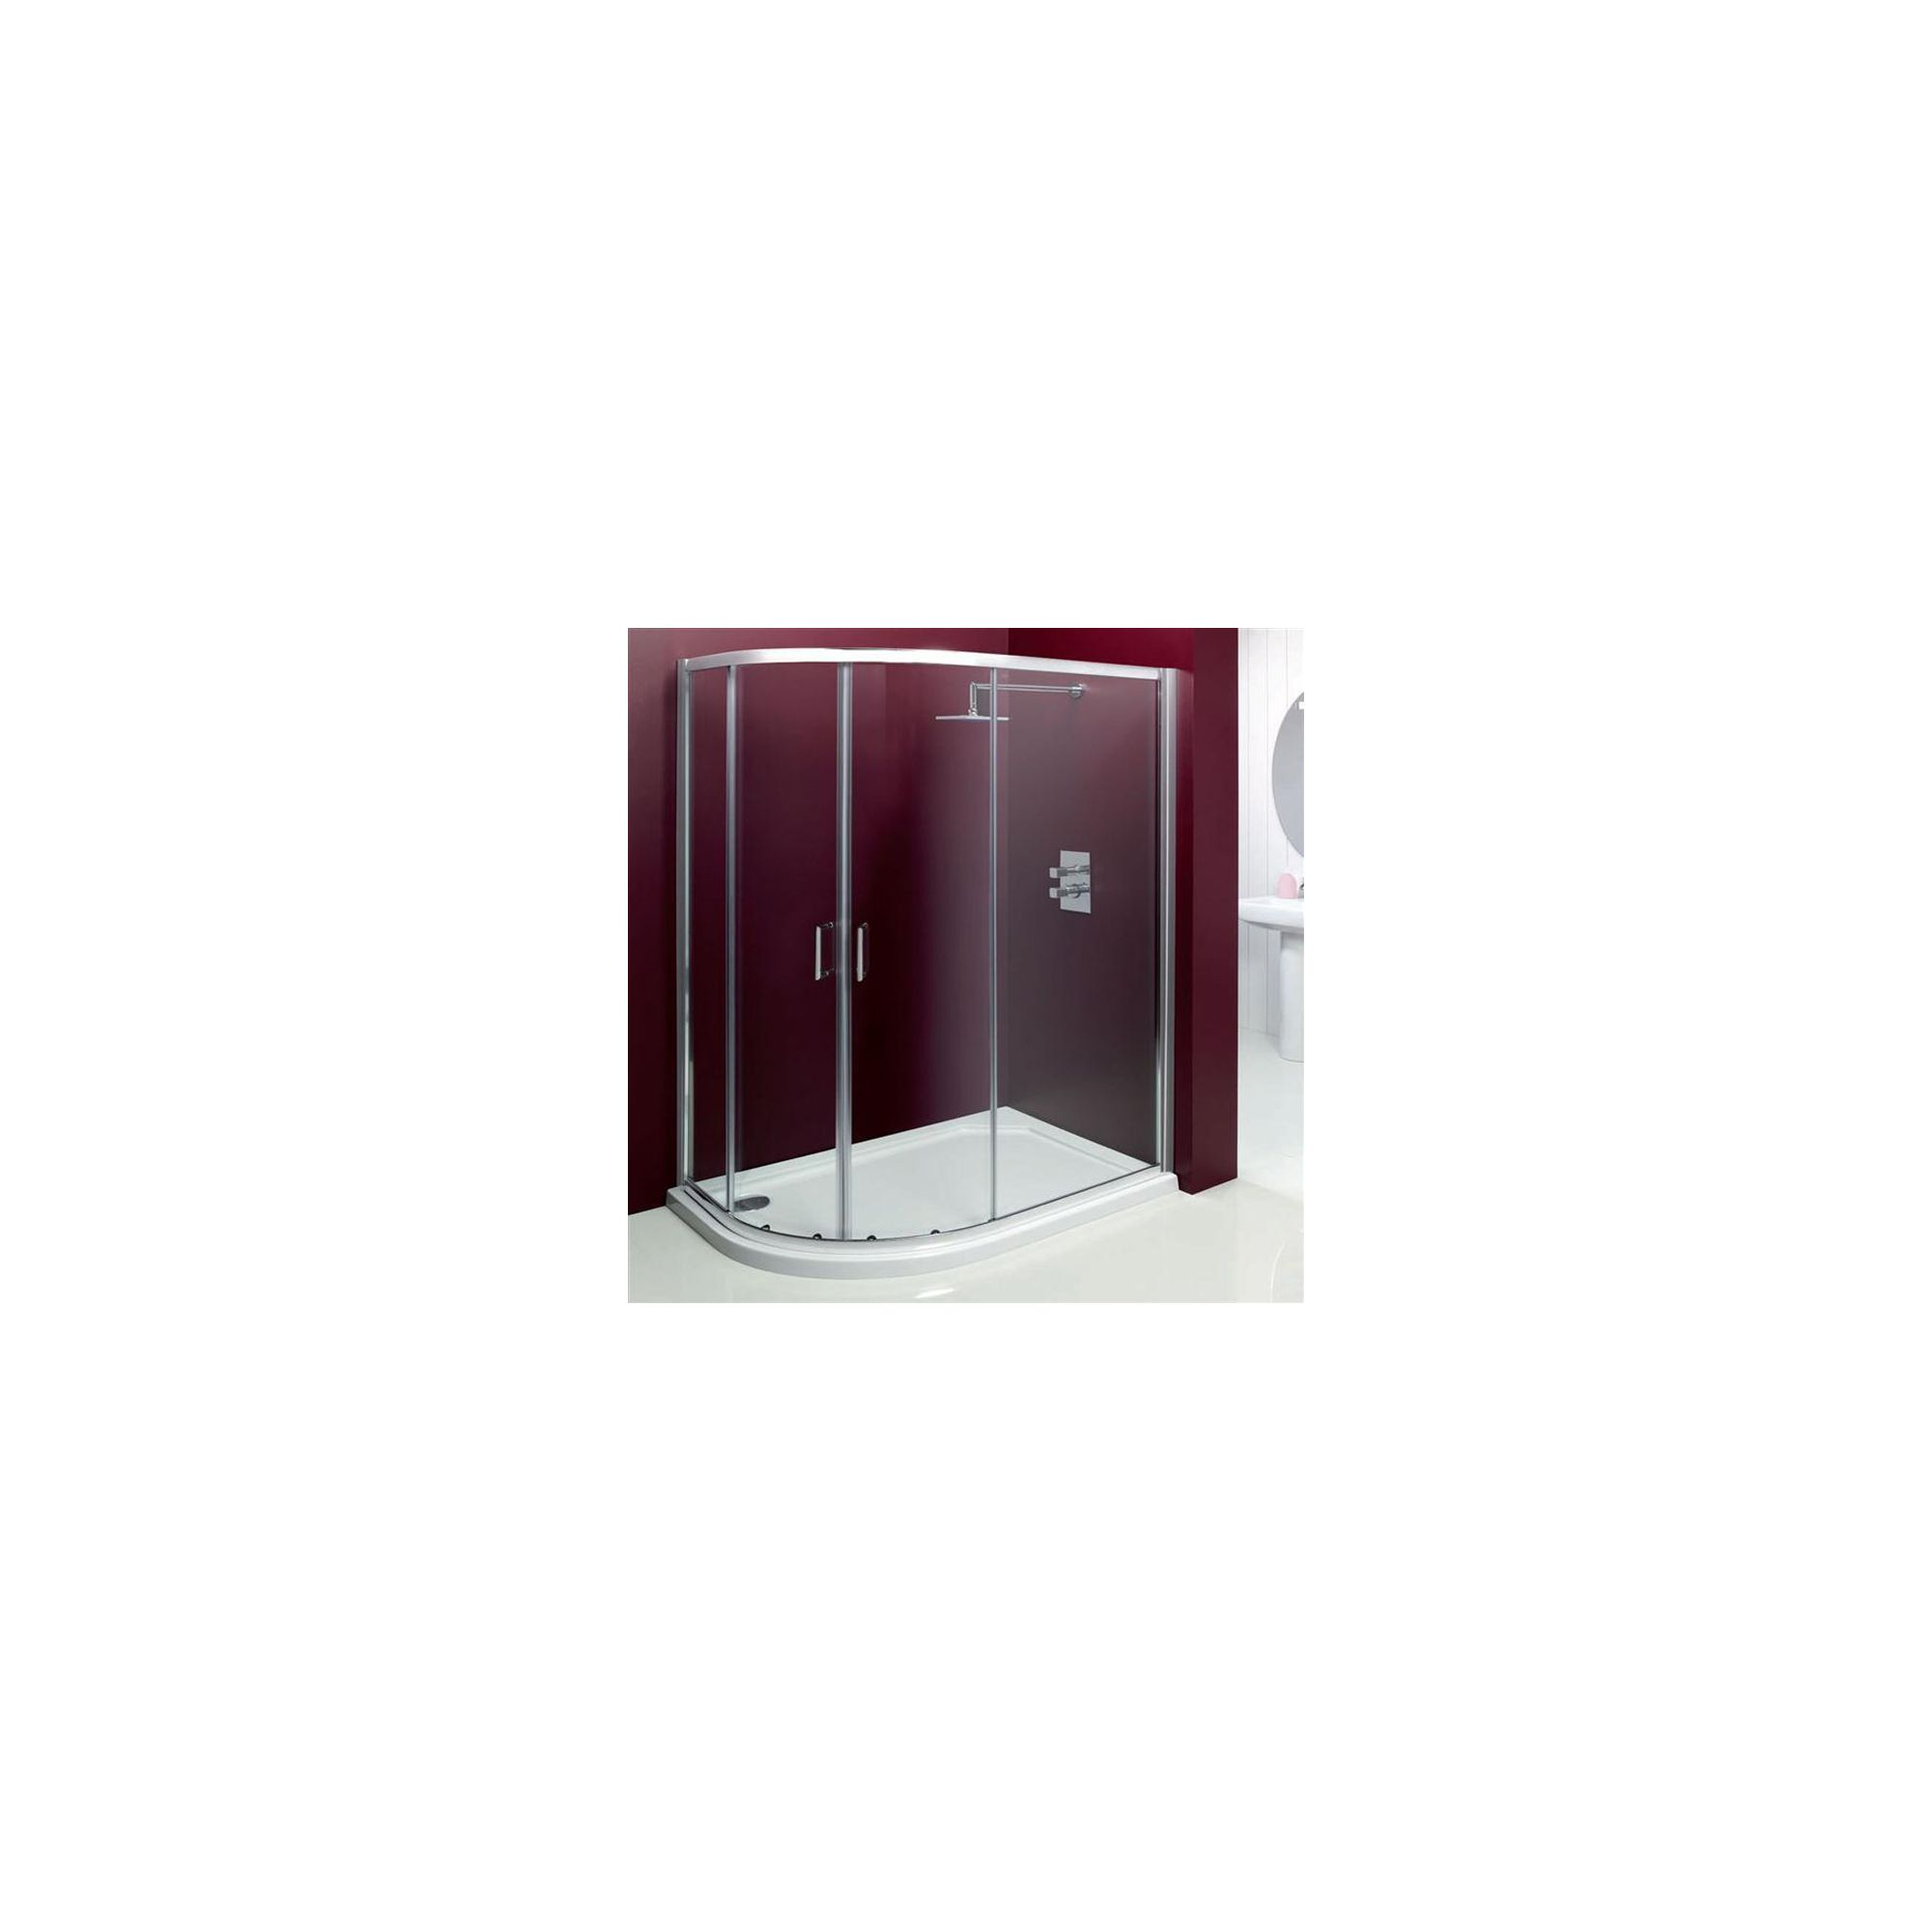 Merlyn Vivid Entree Offset Quadrant Shower Door, 1200mm x 900mm, 6mm Glass at Tesco Direct